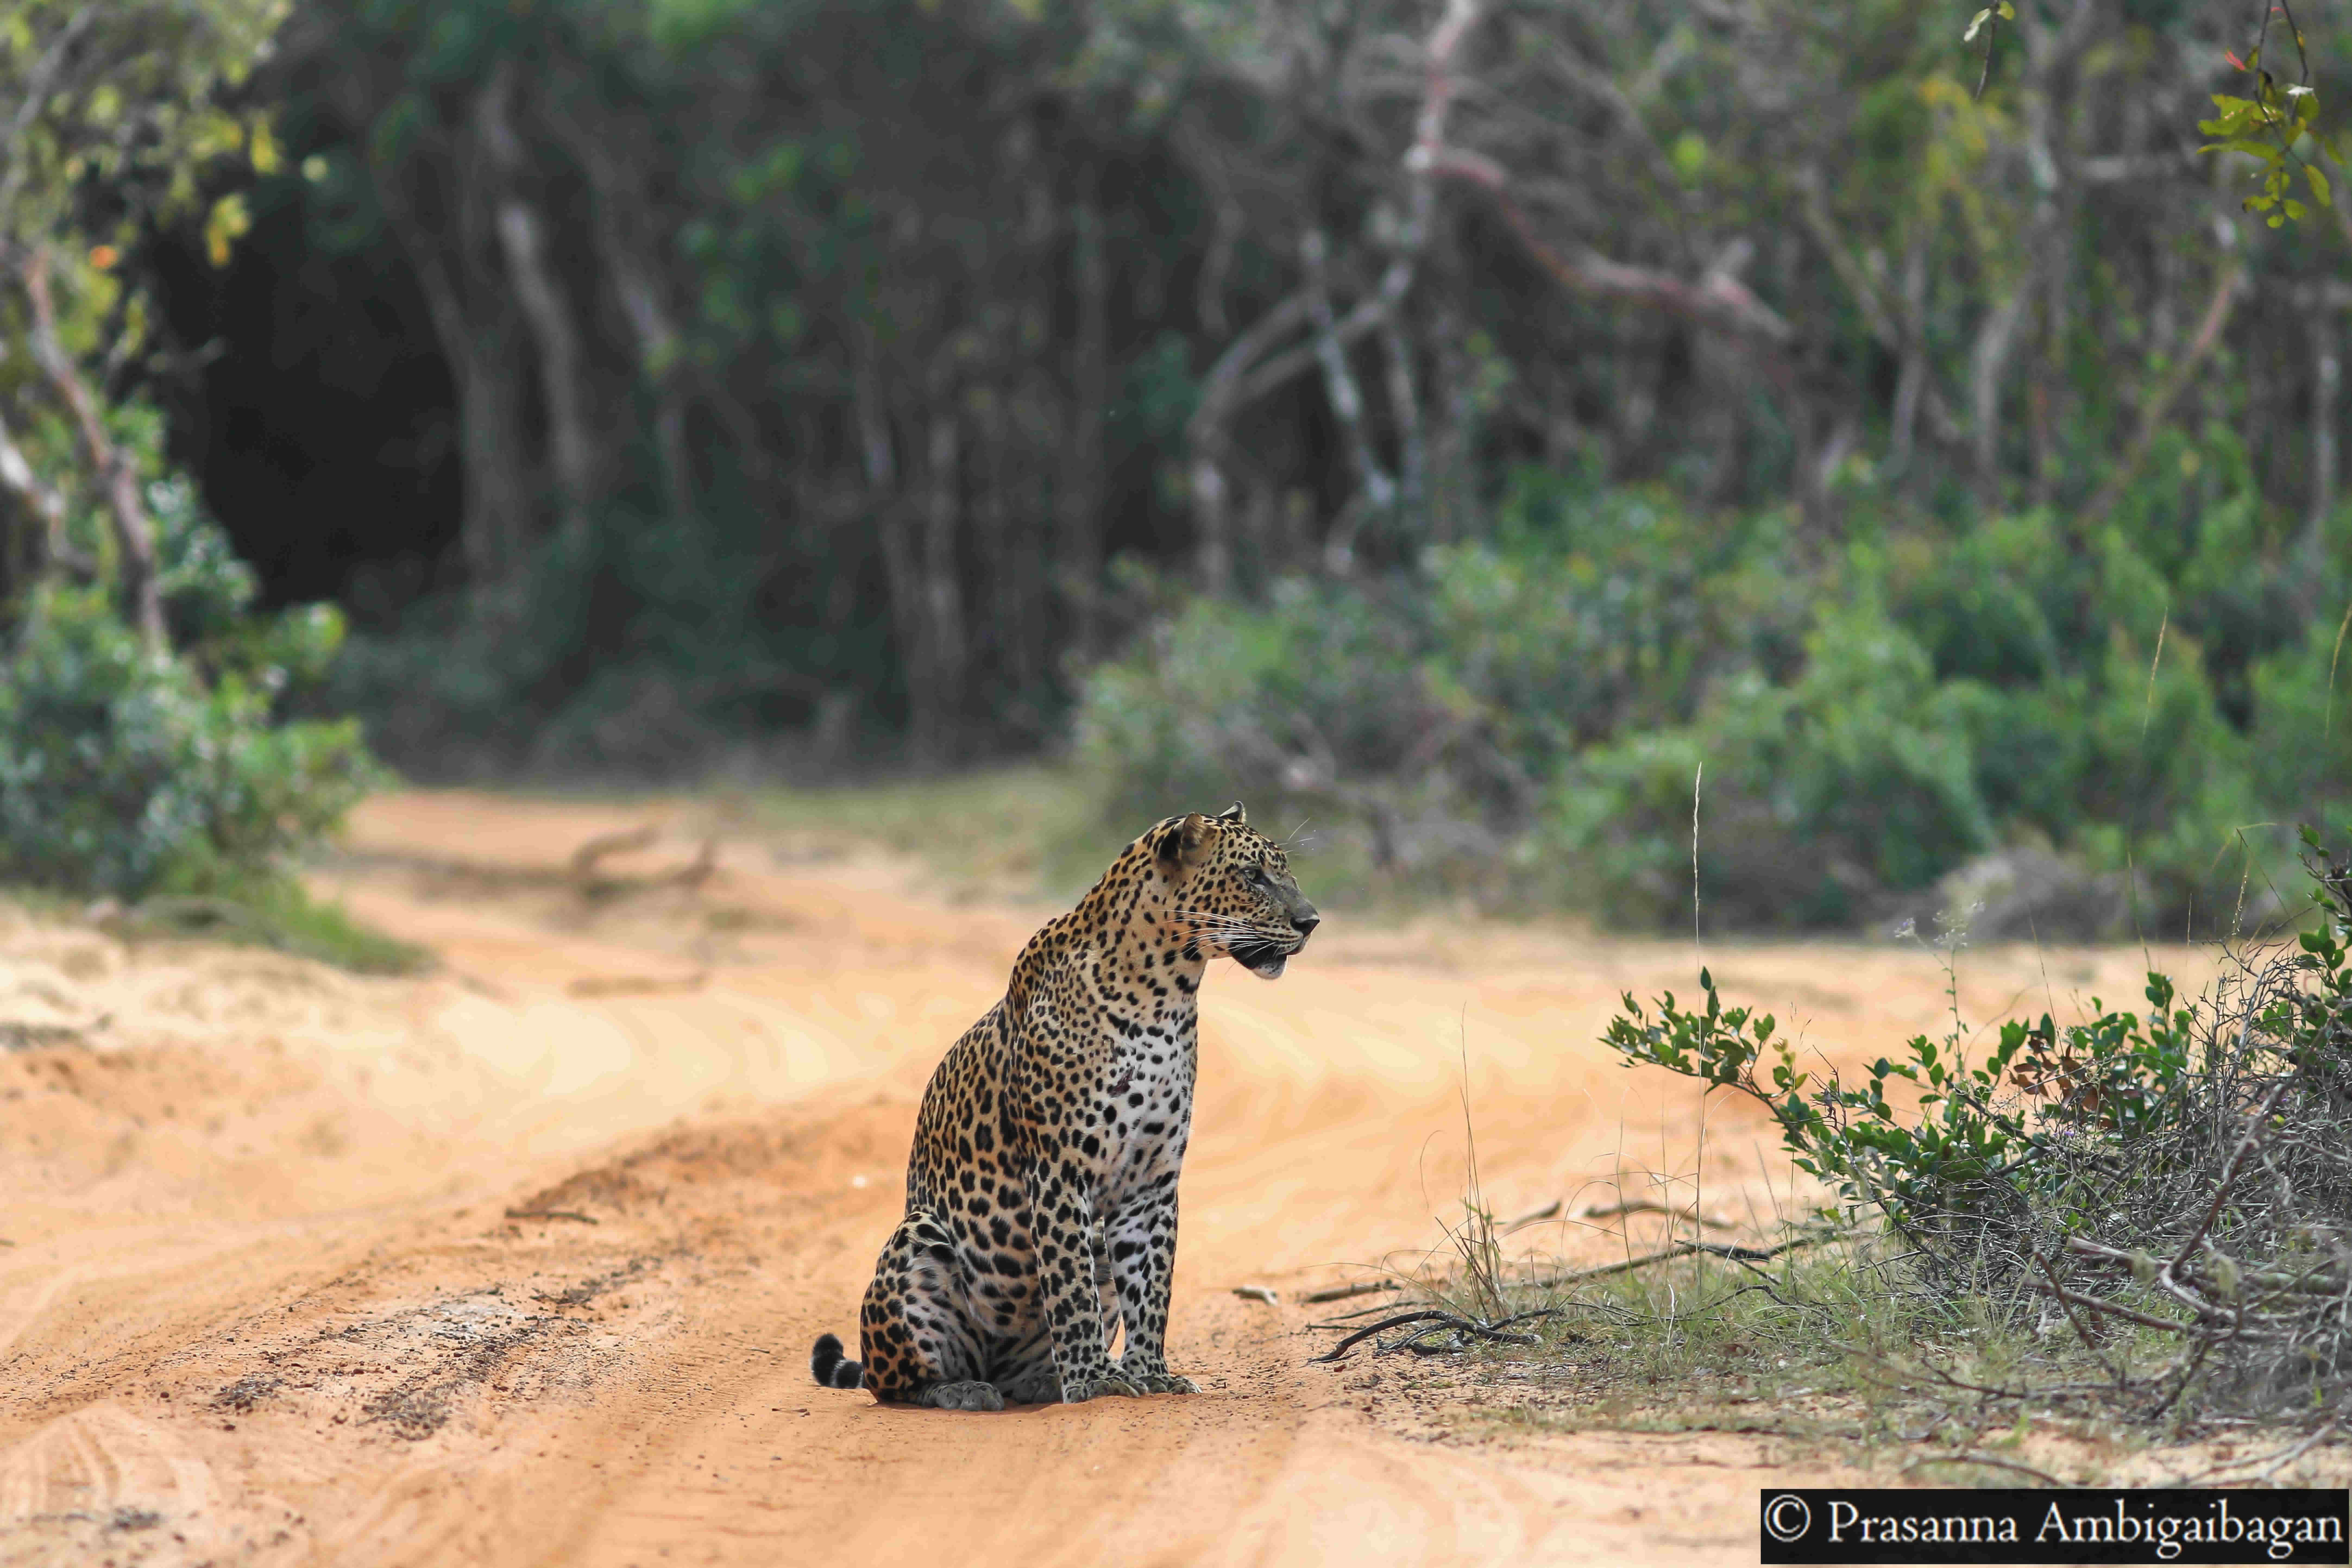 Wildlife Tours and Wildlife Photography Tours to Sri Lanka – FREE KNOWLEDGE SHARING SERVICE